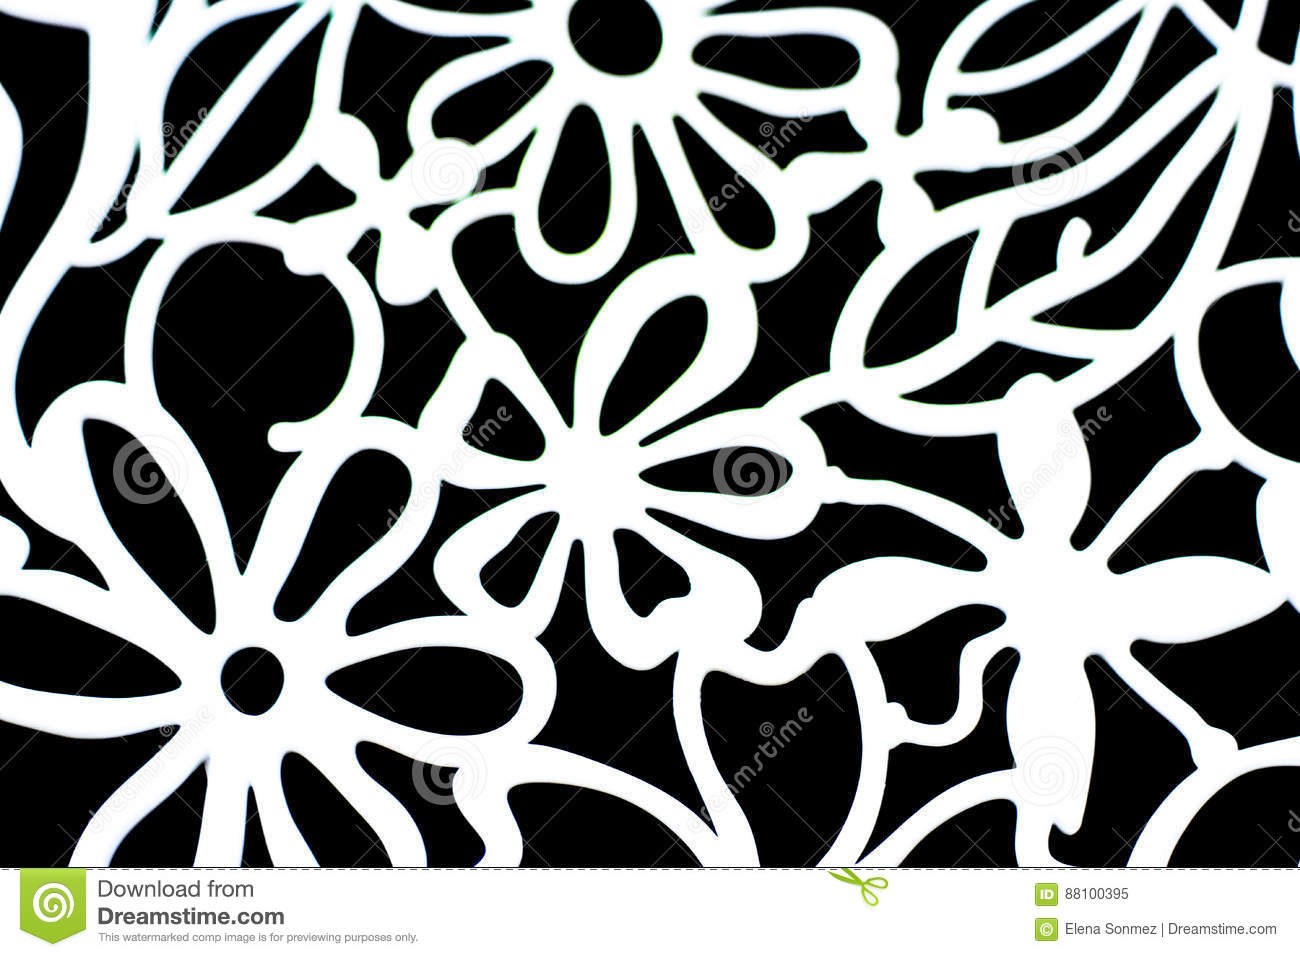 Decorative wallpaper with white flowers on black background